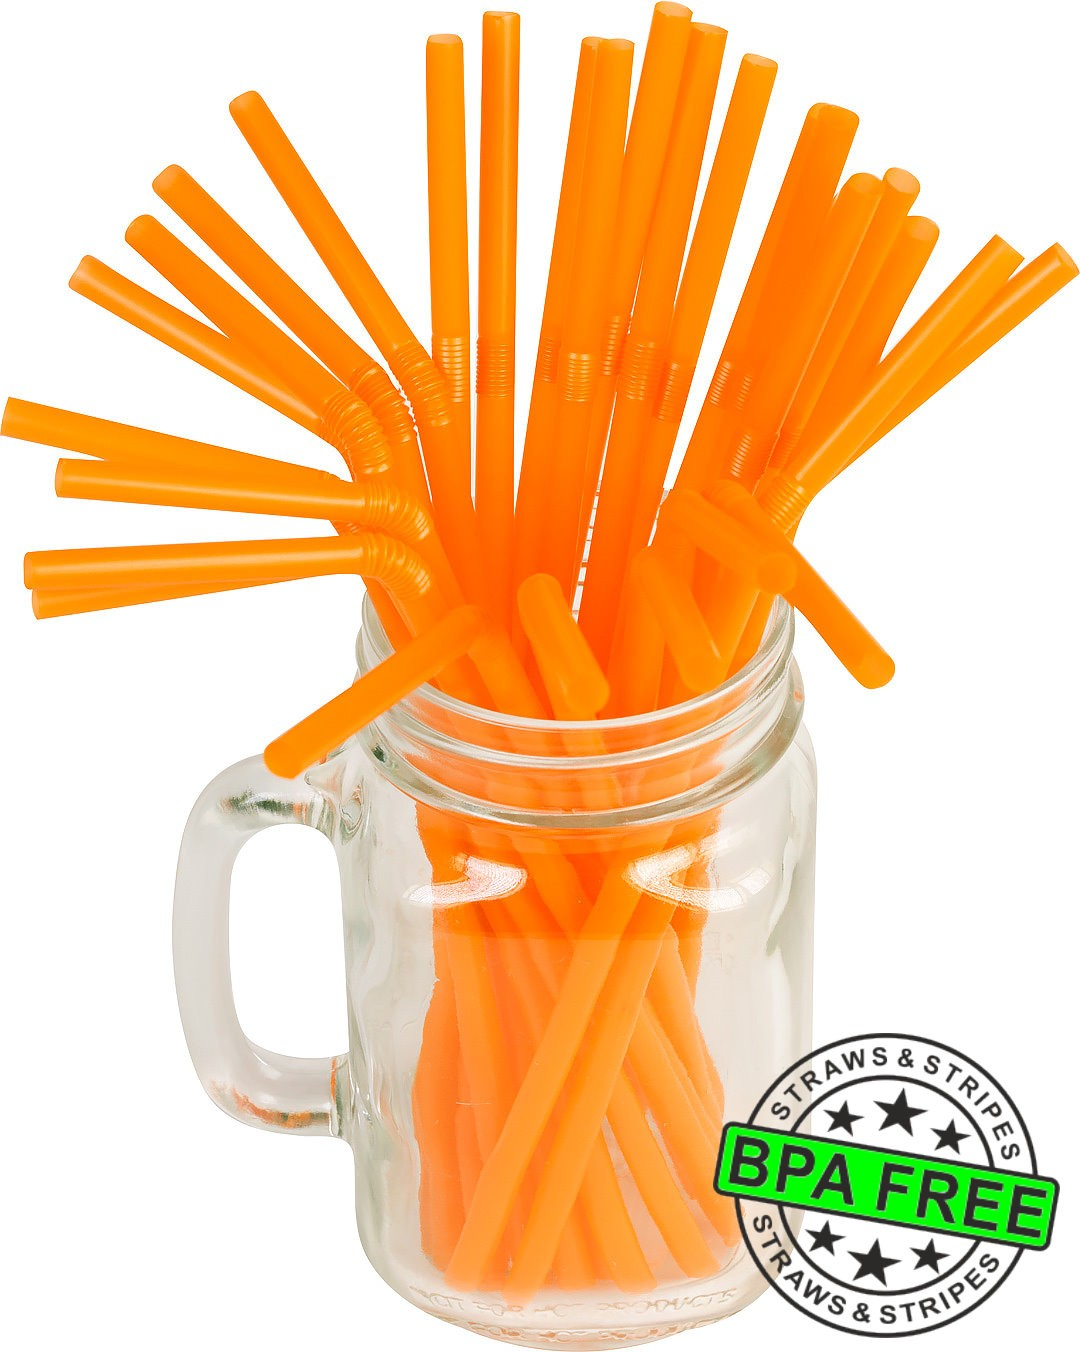 Flexible drinking straws 8.25 x 0.23 inch - color: orange